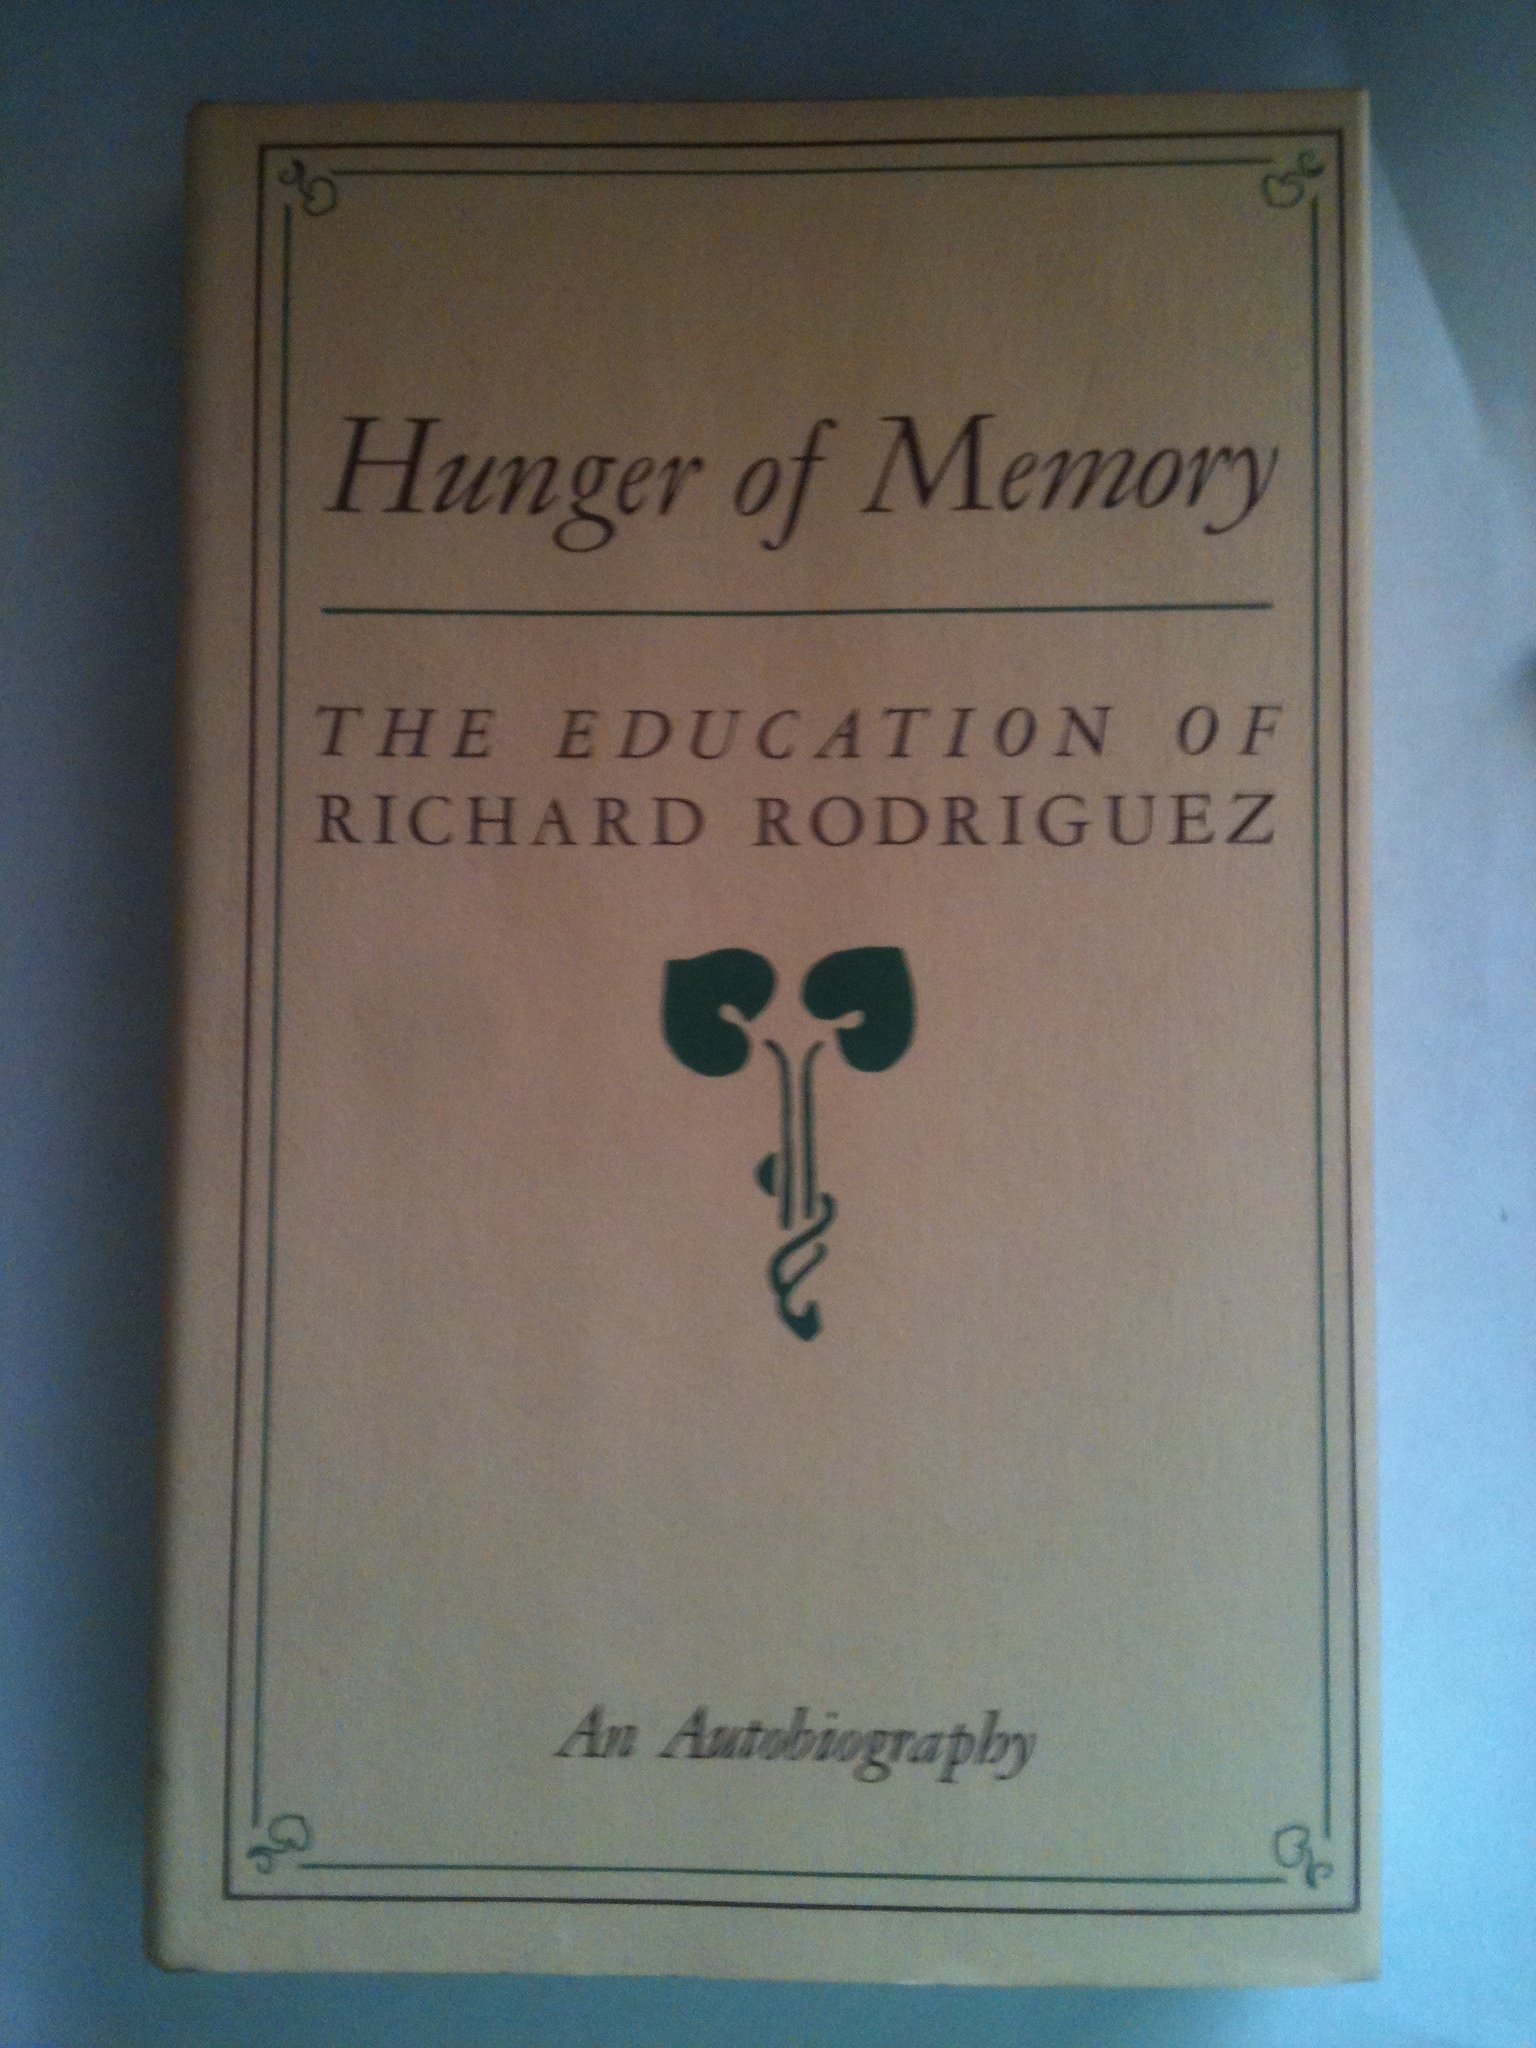 hunger of memory the education of richard rodriguez richard hunger of memory the education of richard rodriguez richard rodriguez 9780879234188 com books